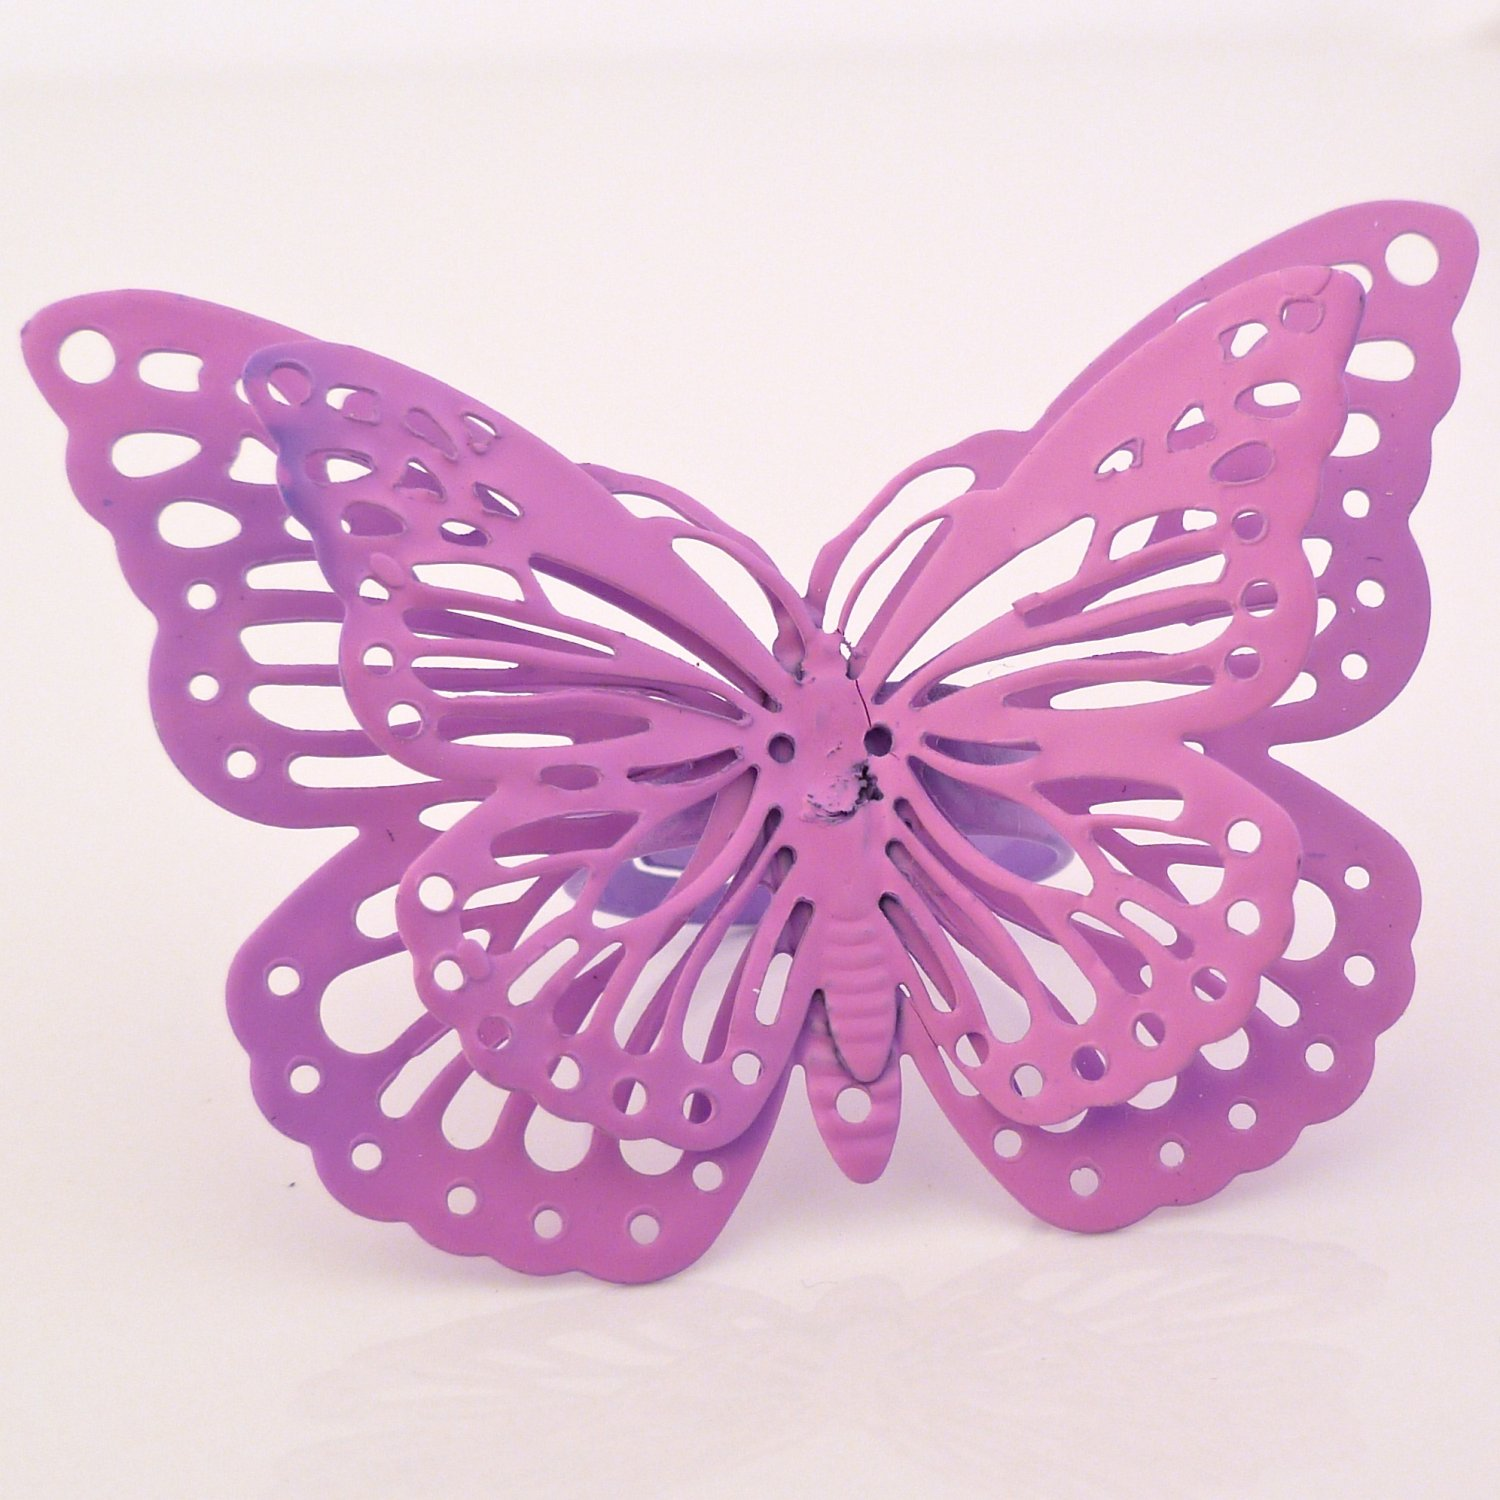 Whimsical Enchanted Butterfly Ring - Hot Pink